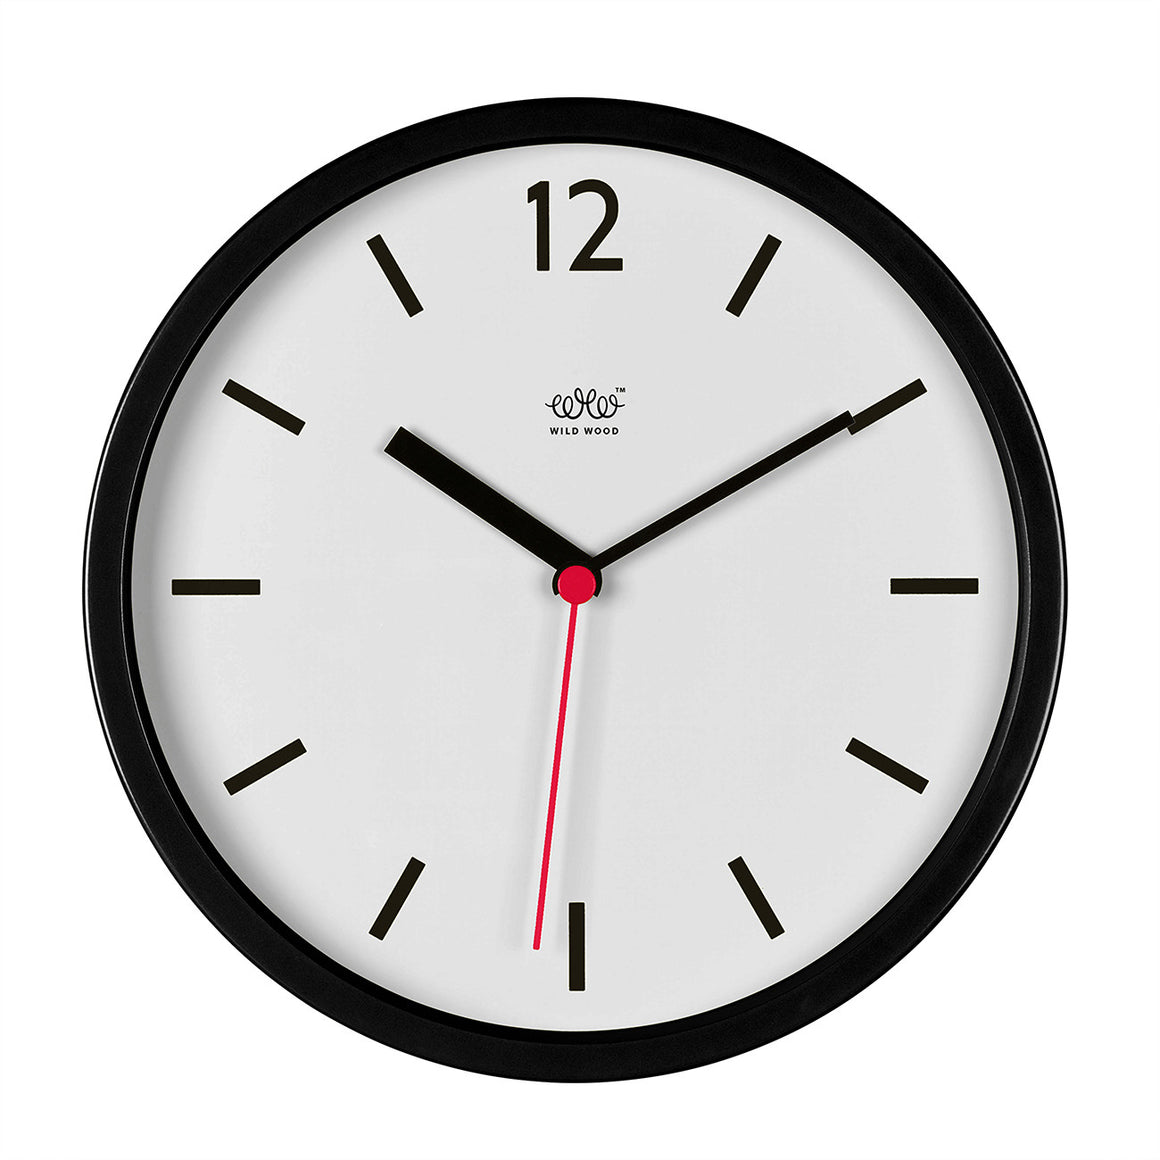 Retro Wall Clock Black and White